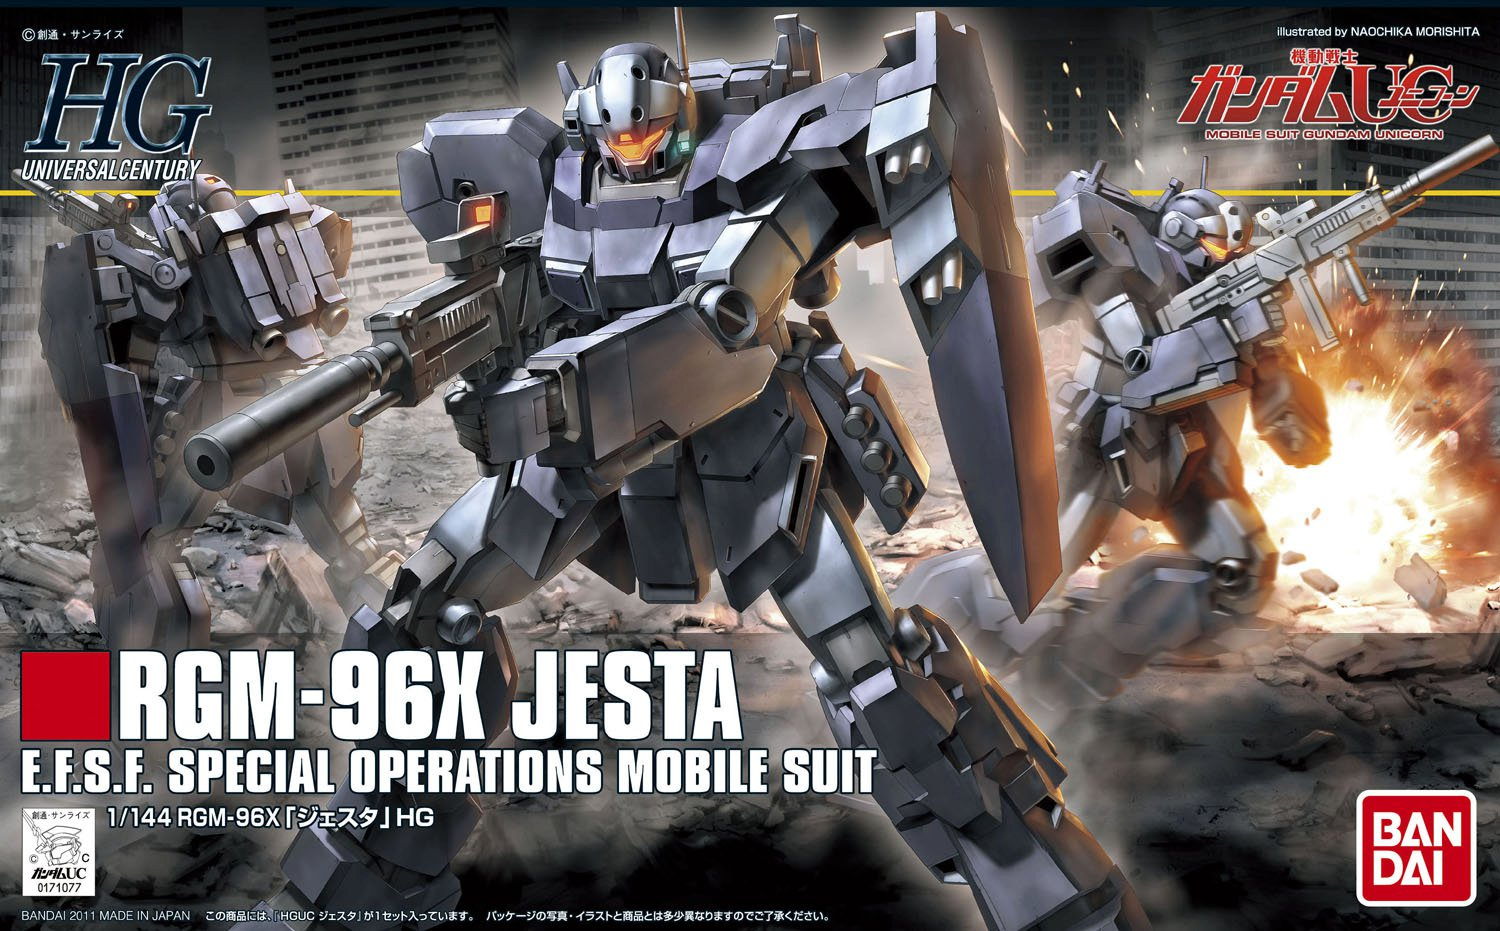 HGUC 1144 RGM 96X Jesta NEW Wallpaper Size Images wlinks to buy it 1500x931